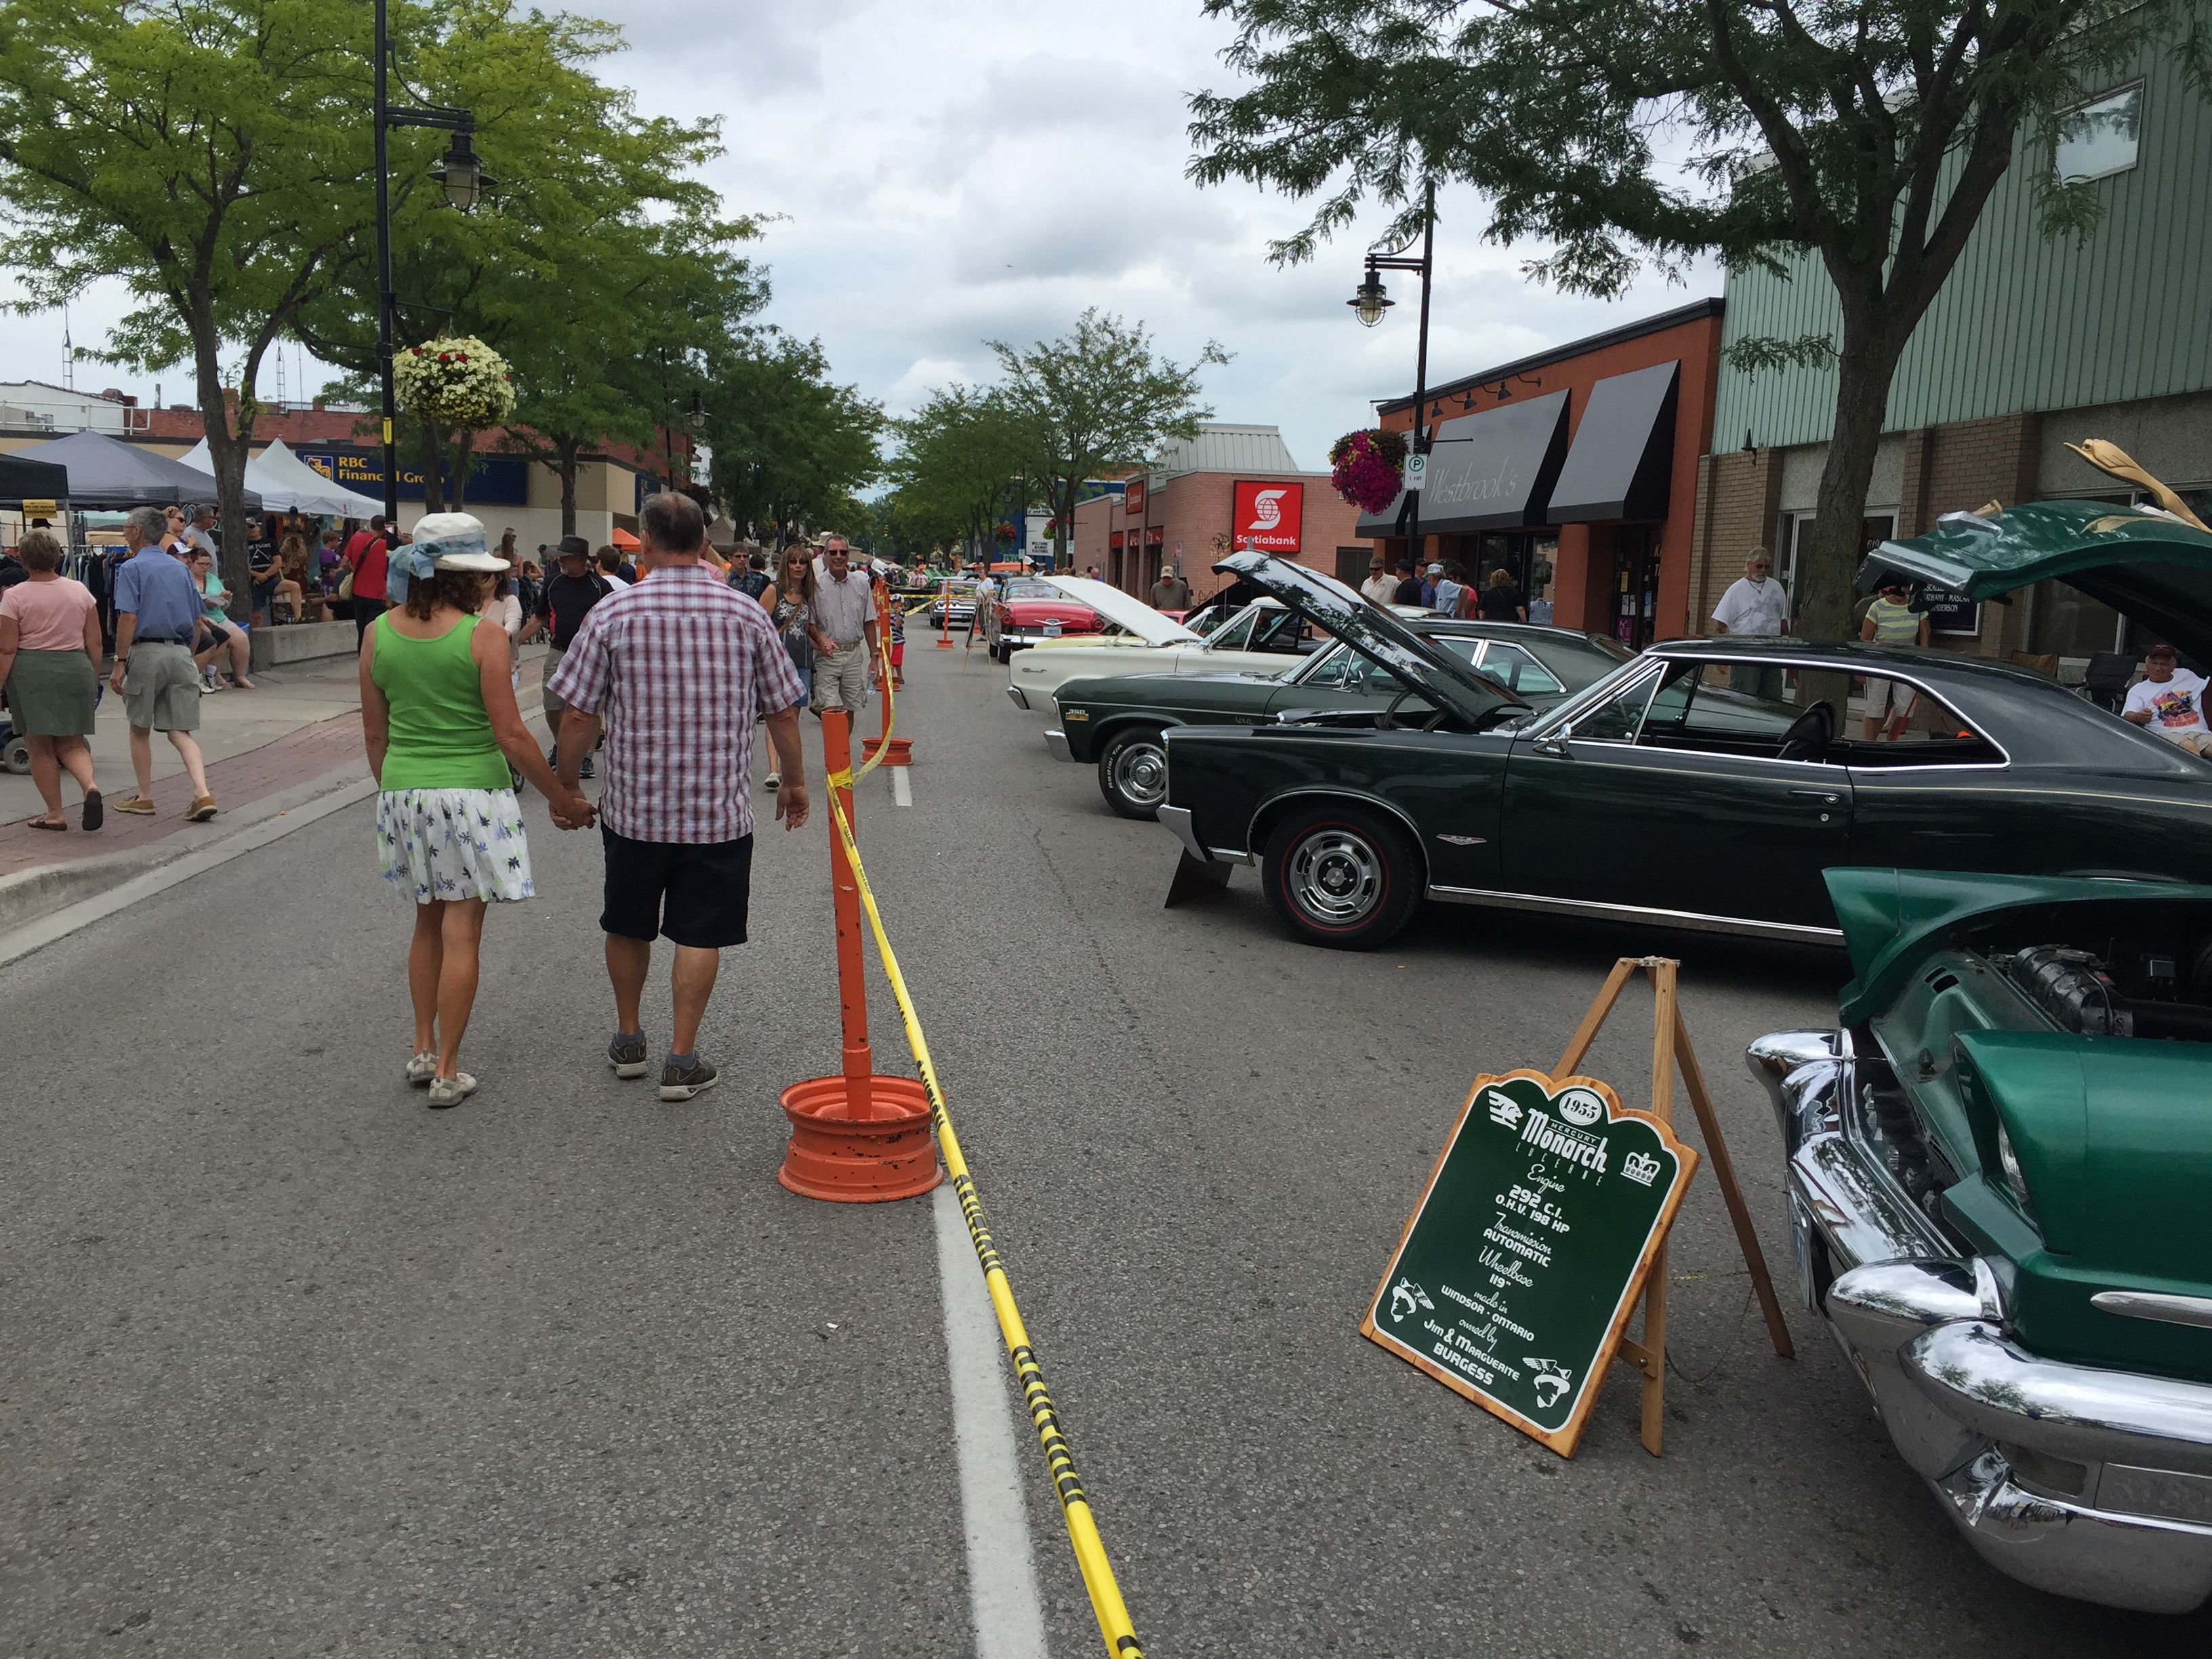 People and classic cars line the streets at the 27th annual Wallaceburg Antique Motor and Boat Outing, August 8, 2015. (Photo by the Blackburn Radio Summer Patrol)